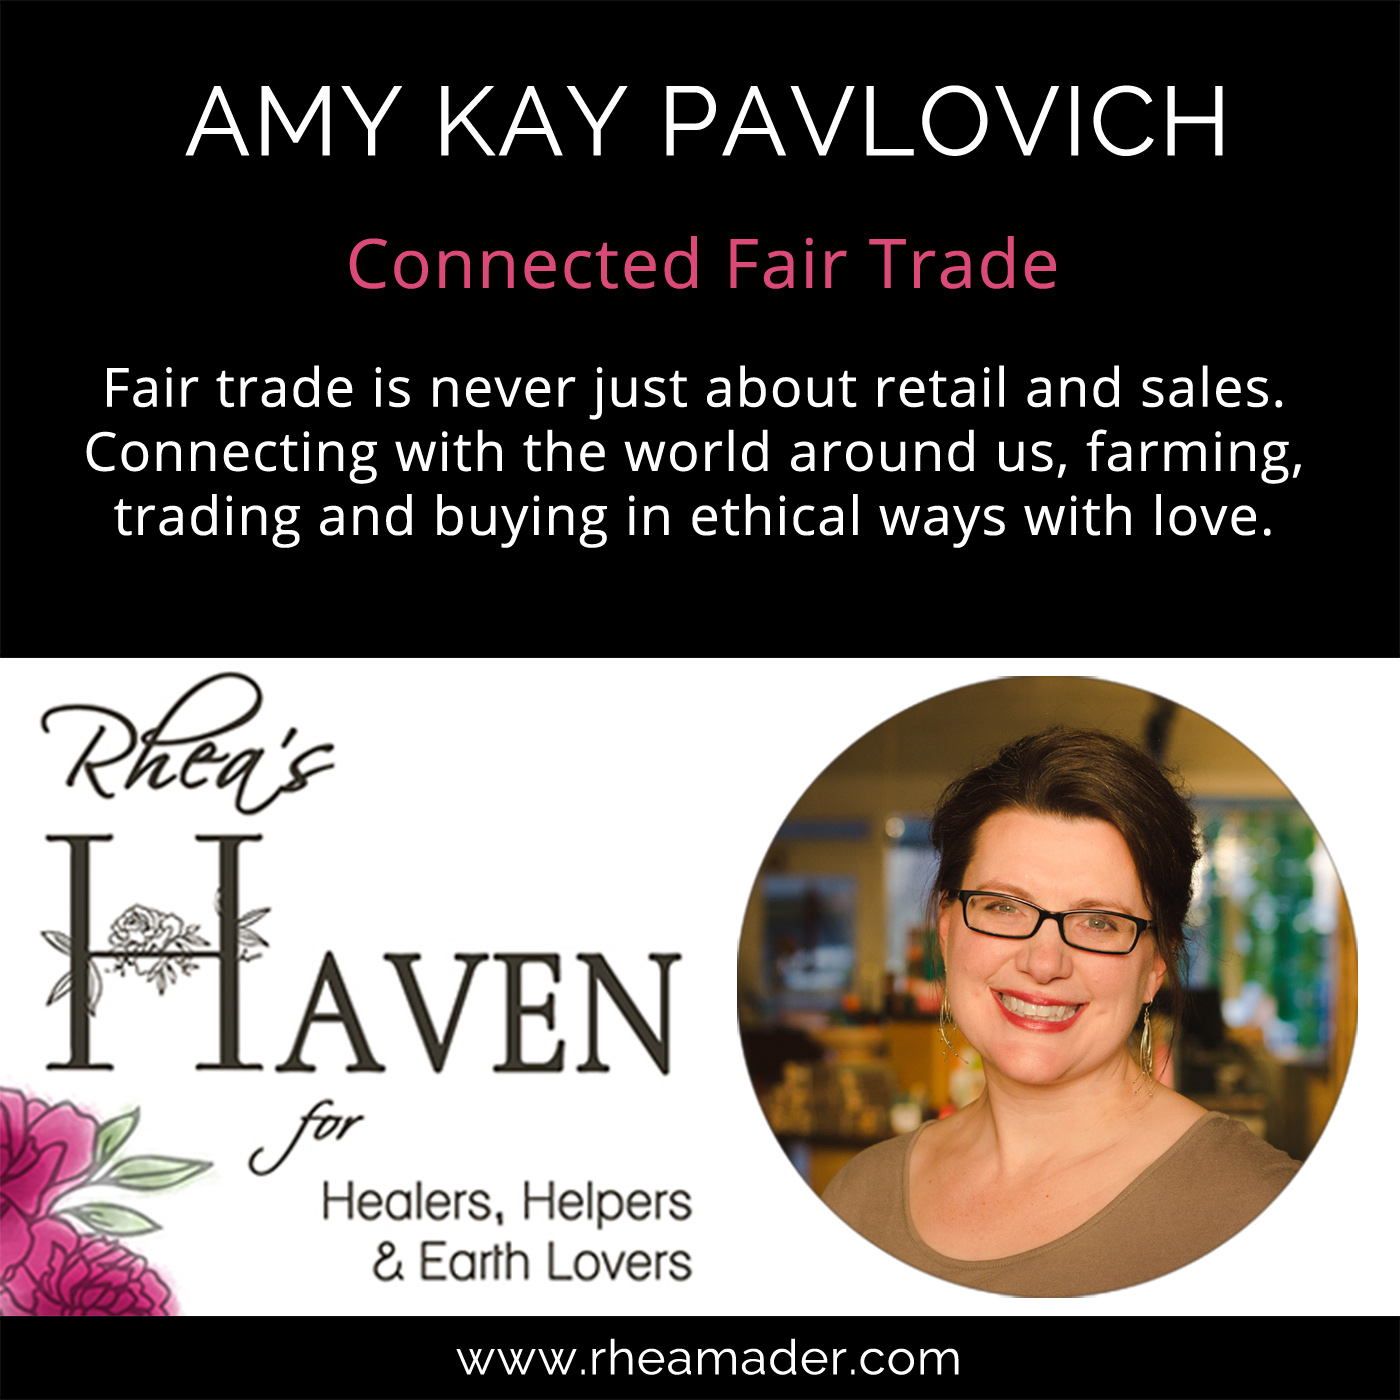 AMY KAY PAVLOVICH:  It's Never Just Retail With Fair Trade